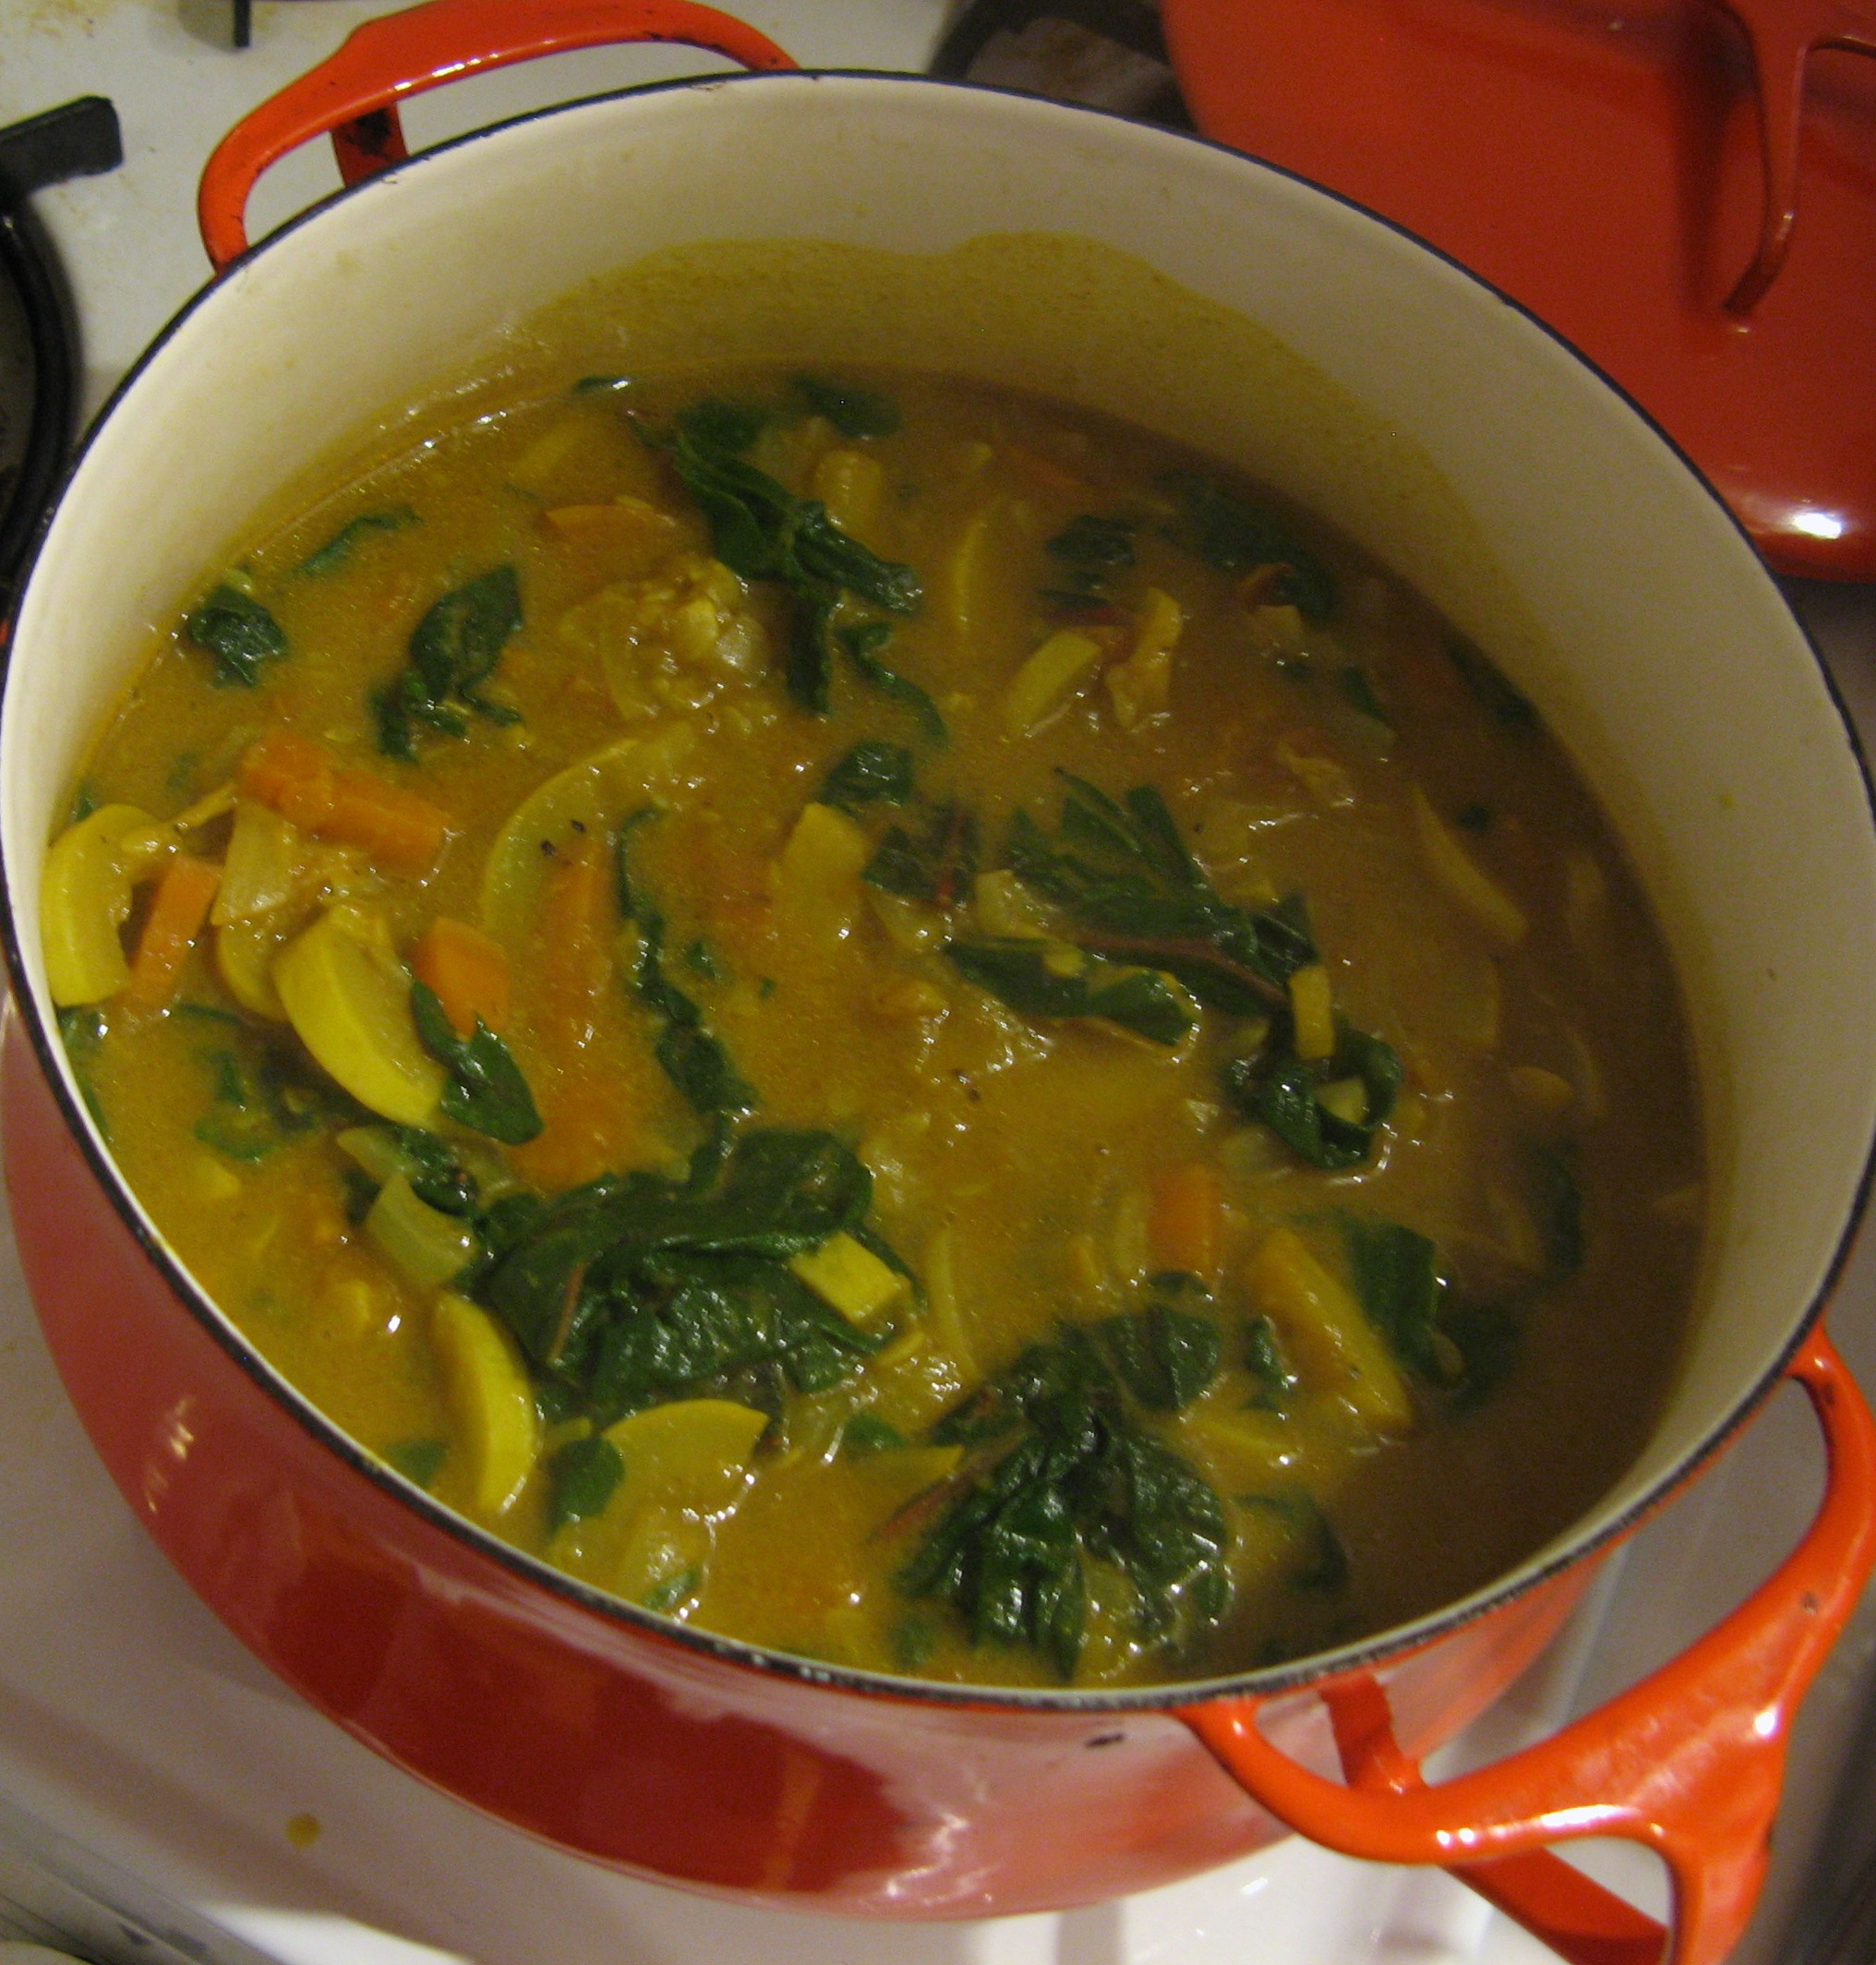 Spicy chard soup with coconut milk | V 8 Mile